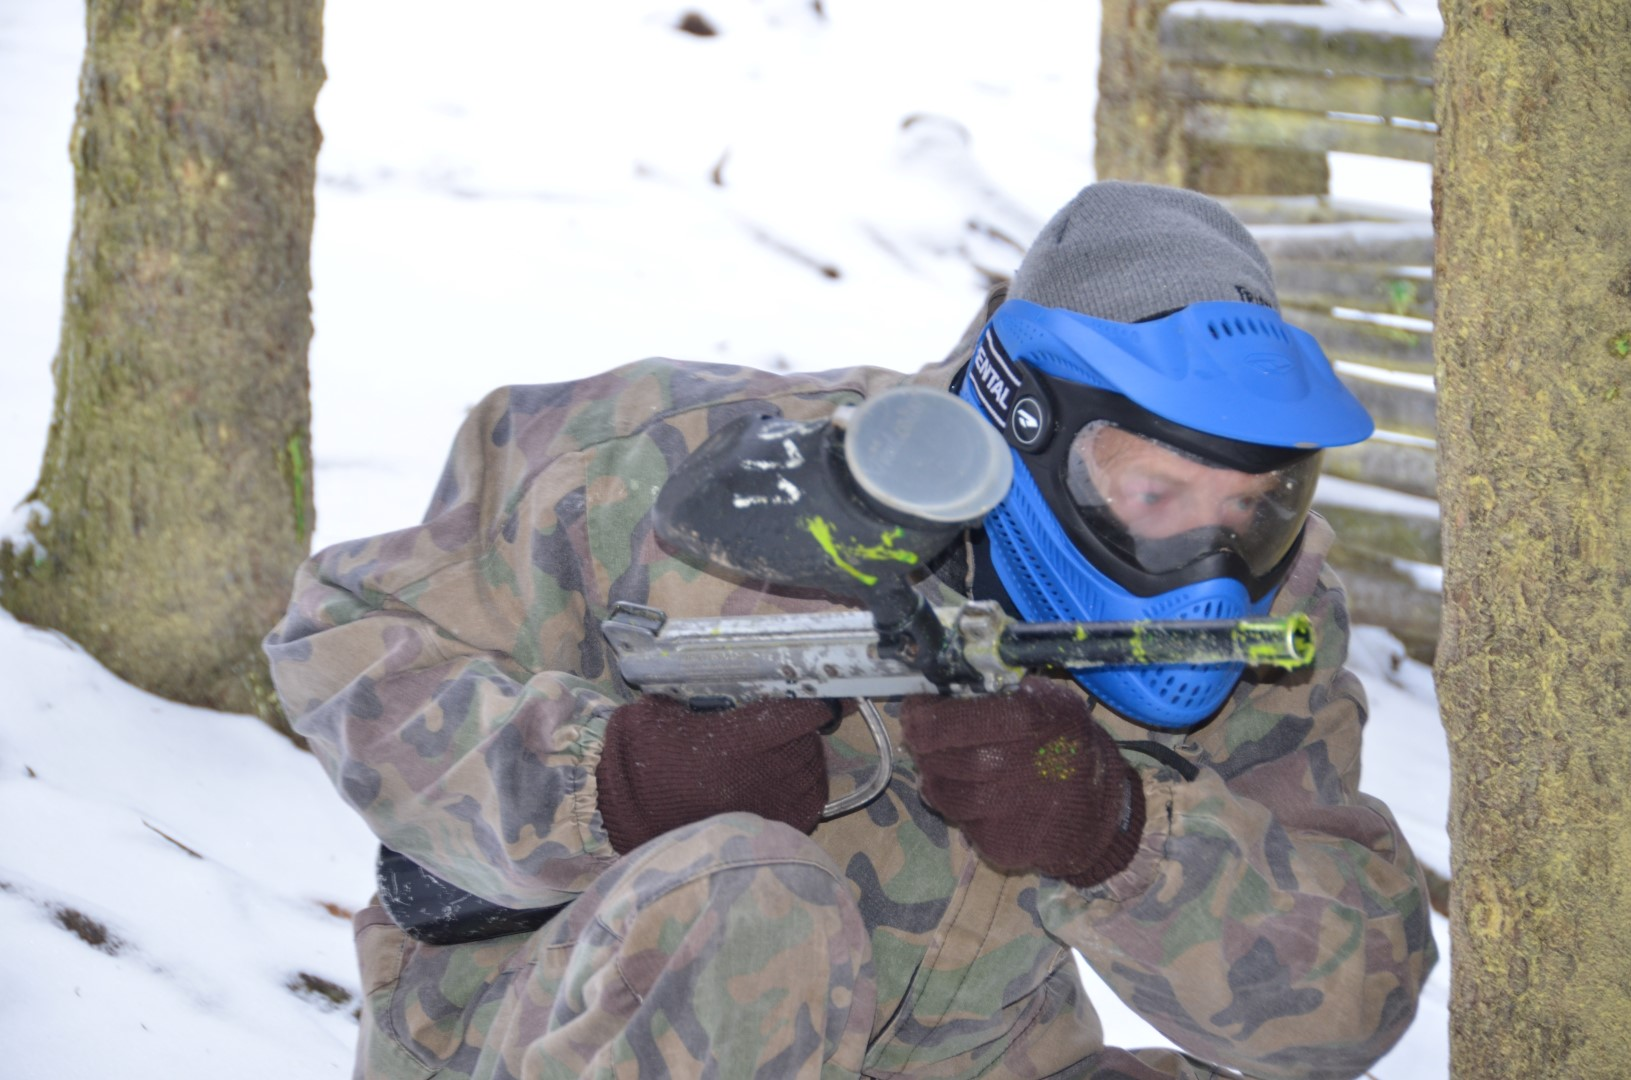 PAINTBALL INDIVIDUAL